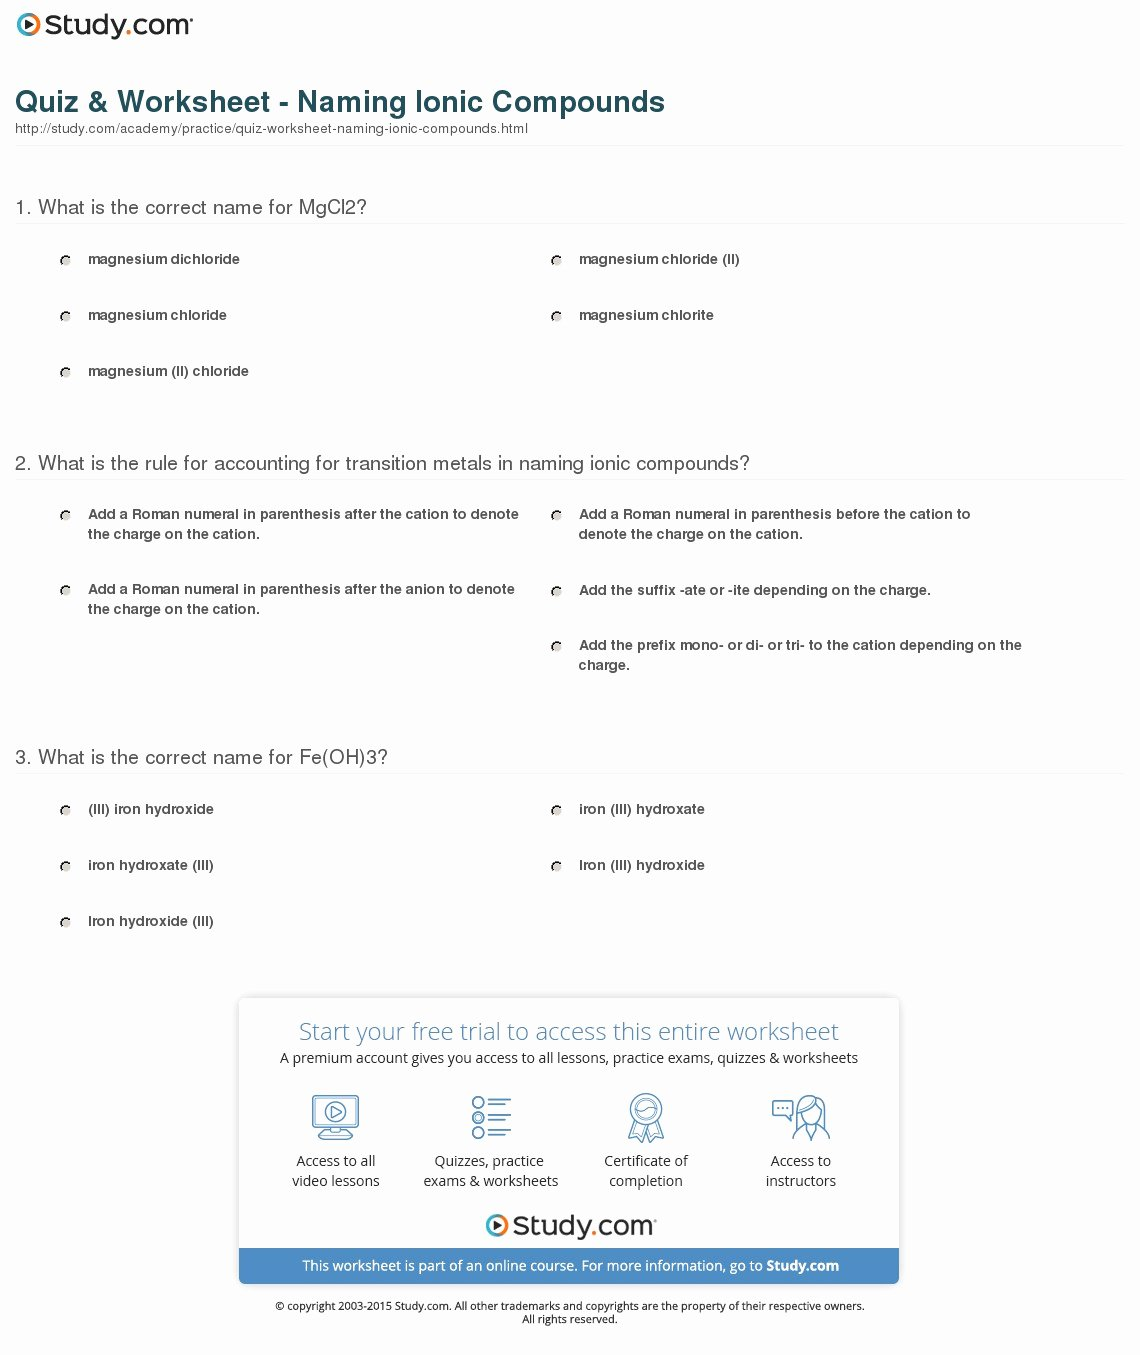 Naming Ionic Compounds Worksheet Answers Best Of Quiz & Worksheet Naming Ionic Pounds